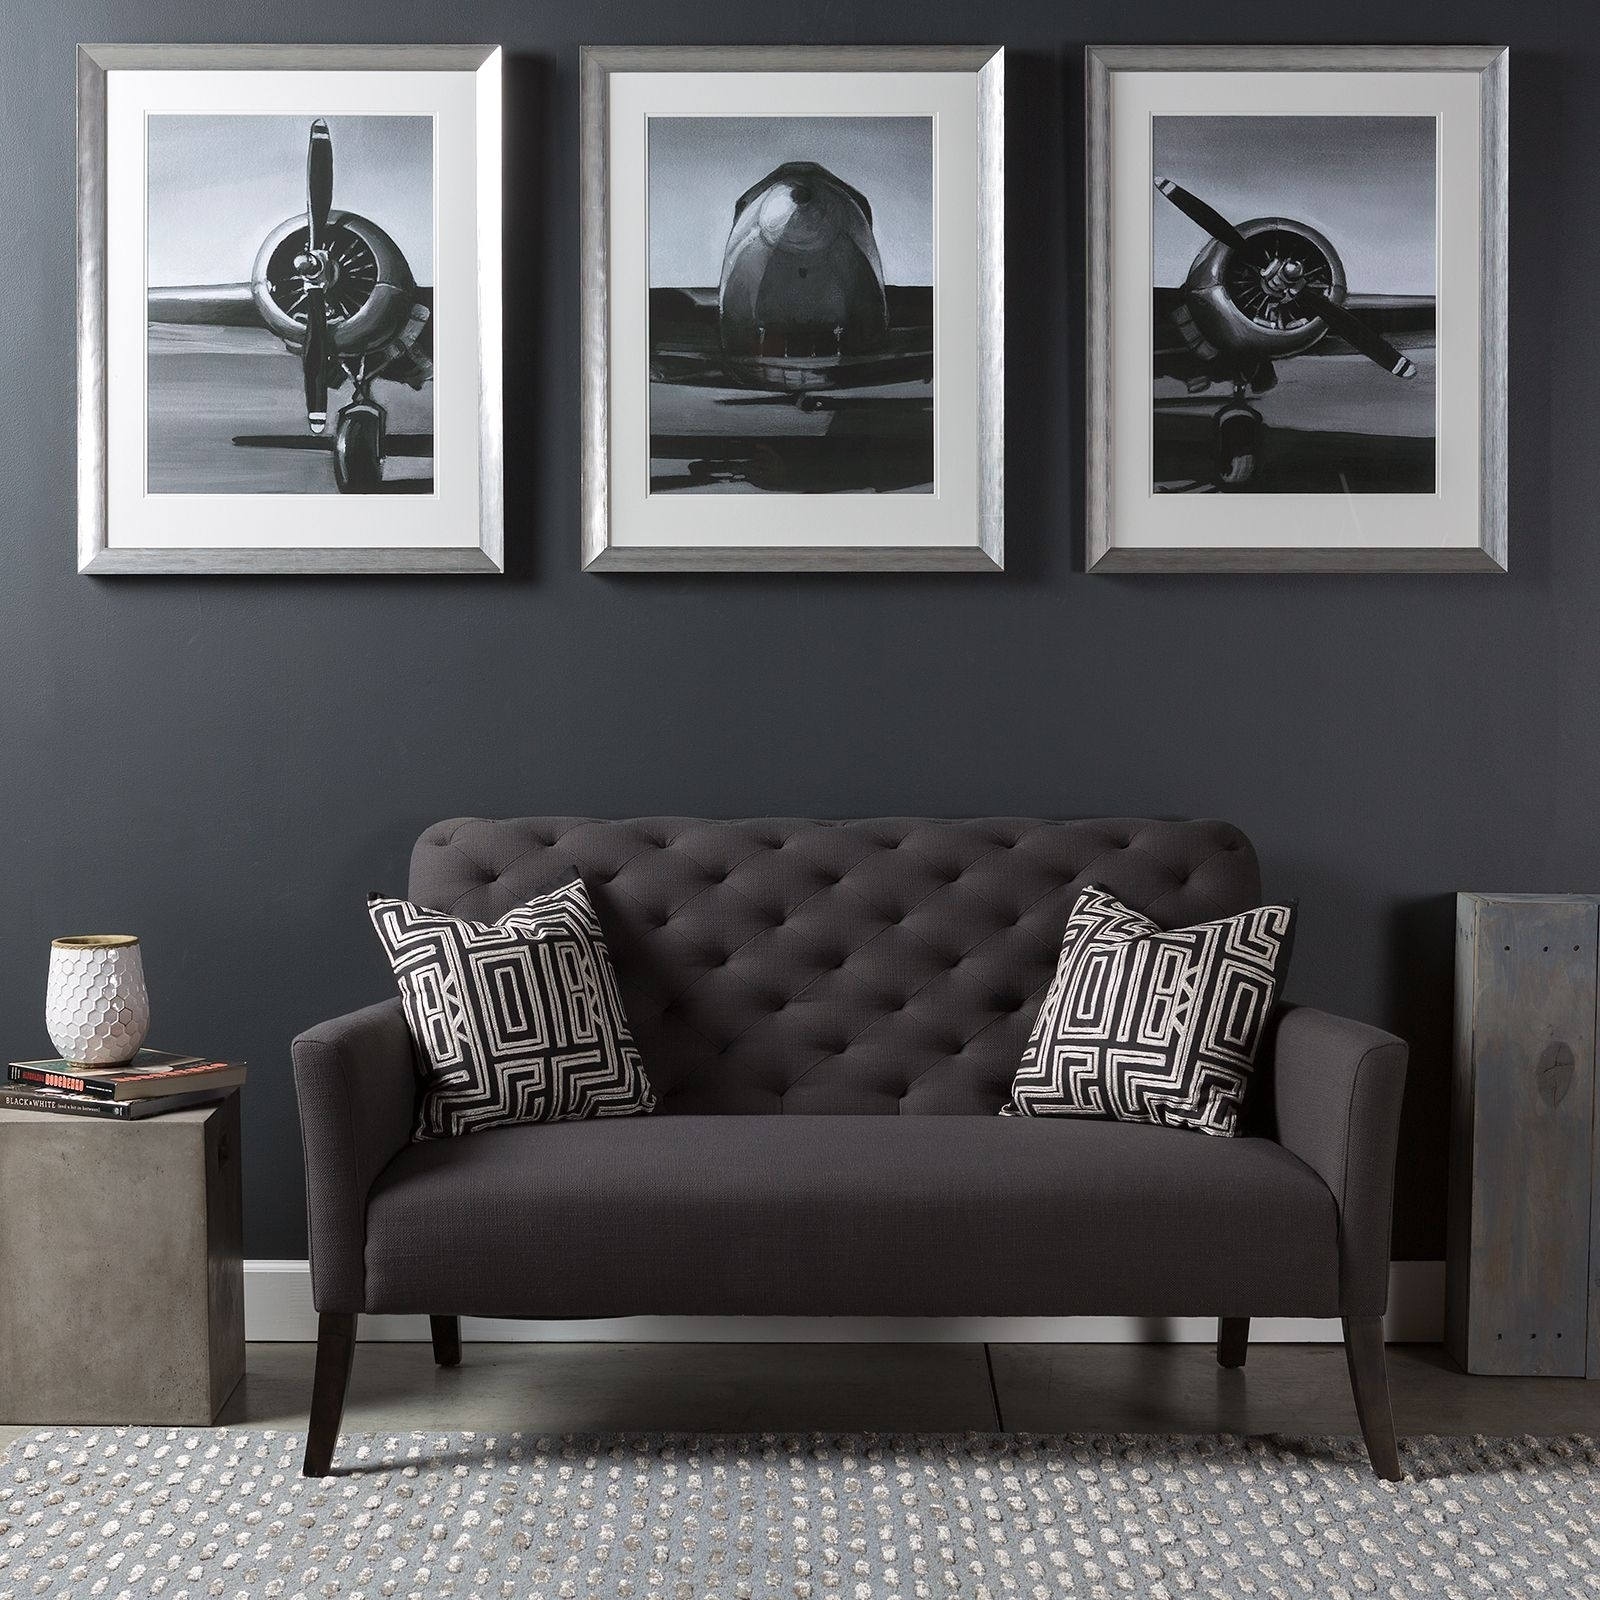 Triptych Wall Art Piece With A Modern Industrial Flare; A Series Of with Airplane Wall Art (Image 19 of 20)